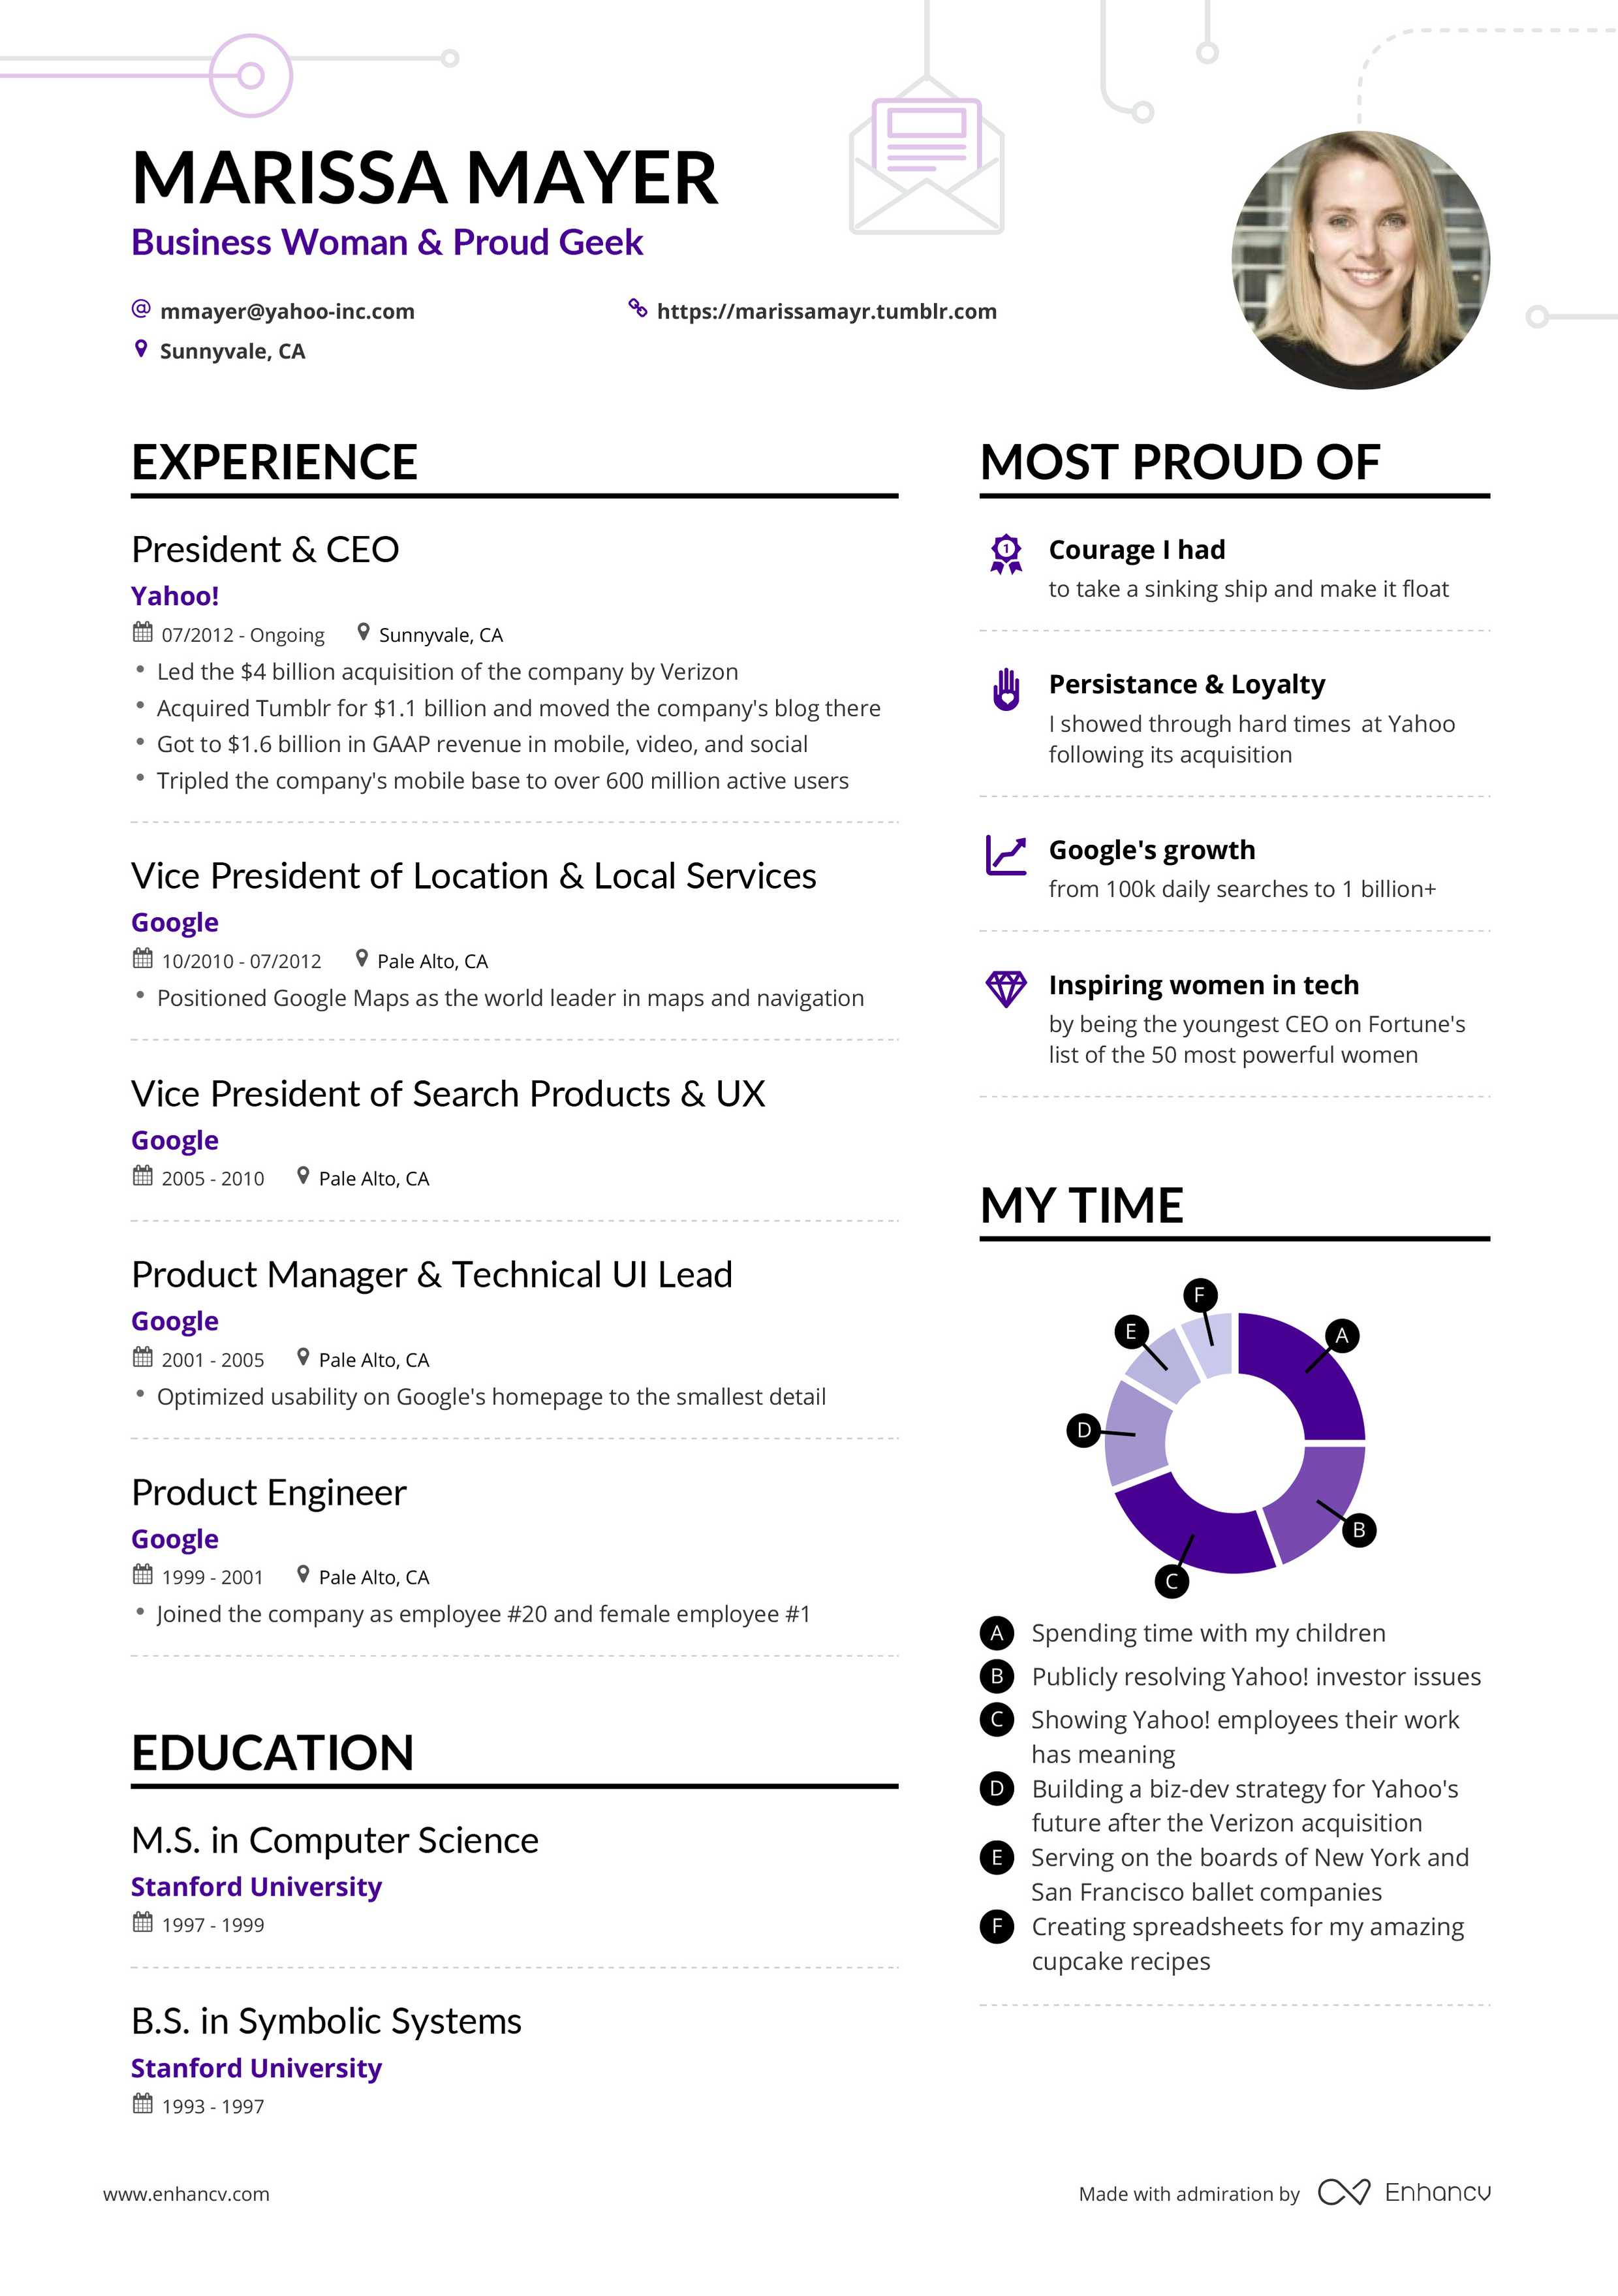 Ceo Resume Template Marissa Mayer S Yahoo Ceo Resume Example Enhancv